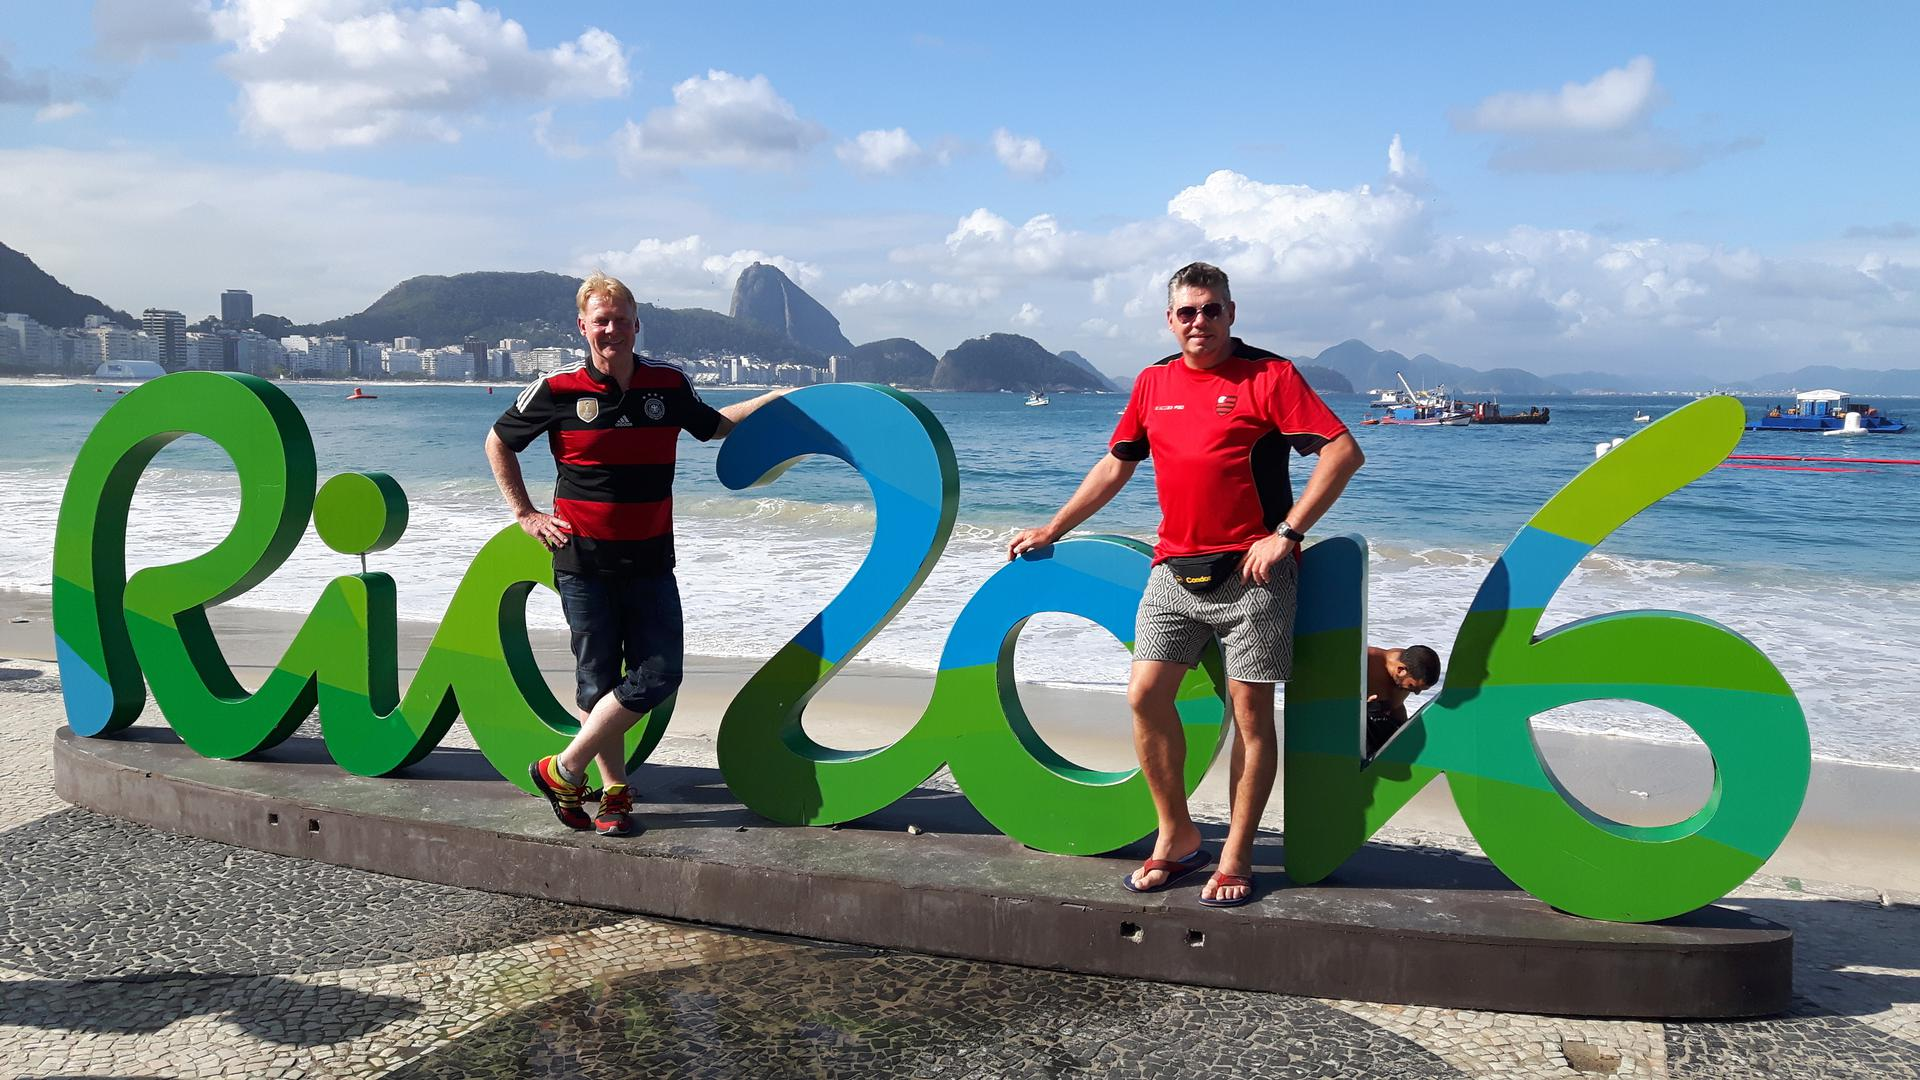 Sommerspiele 2016 Rio, Olympia